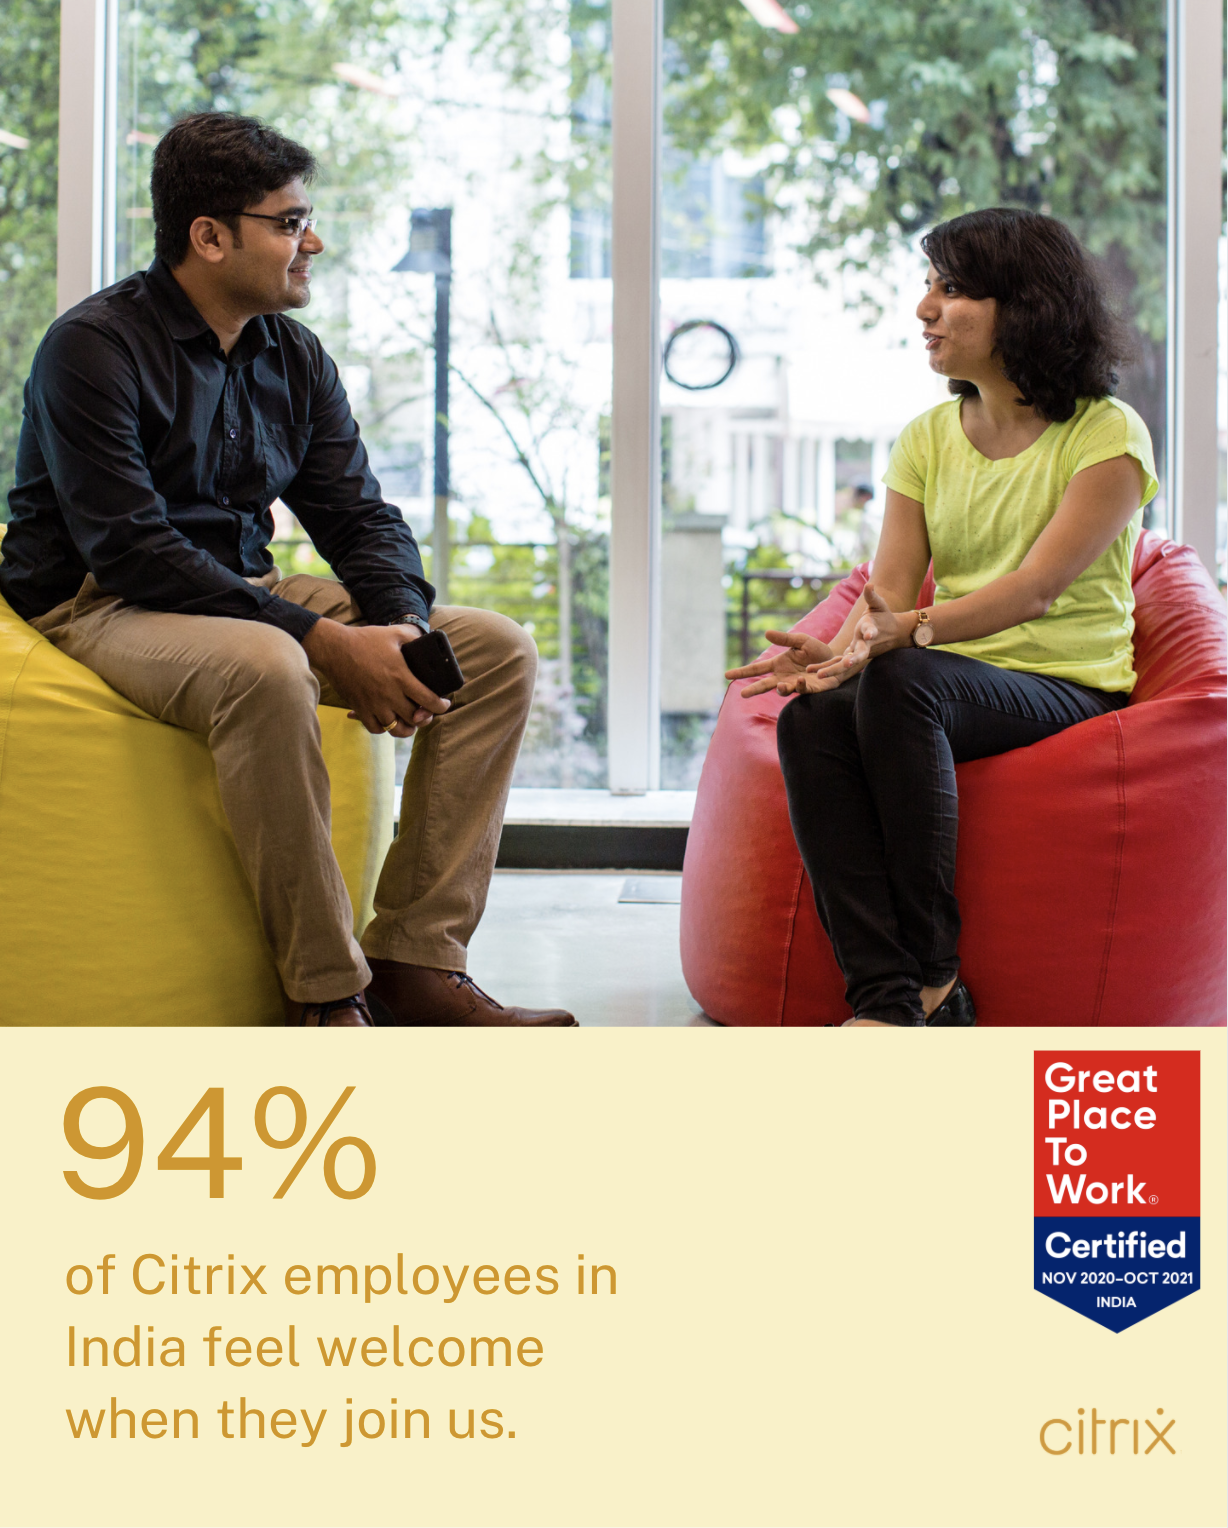 94% of our employees in India feel welcome when they join us